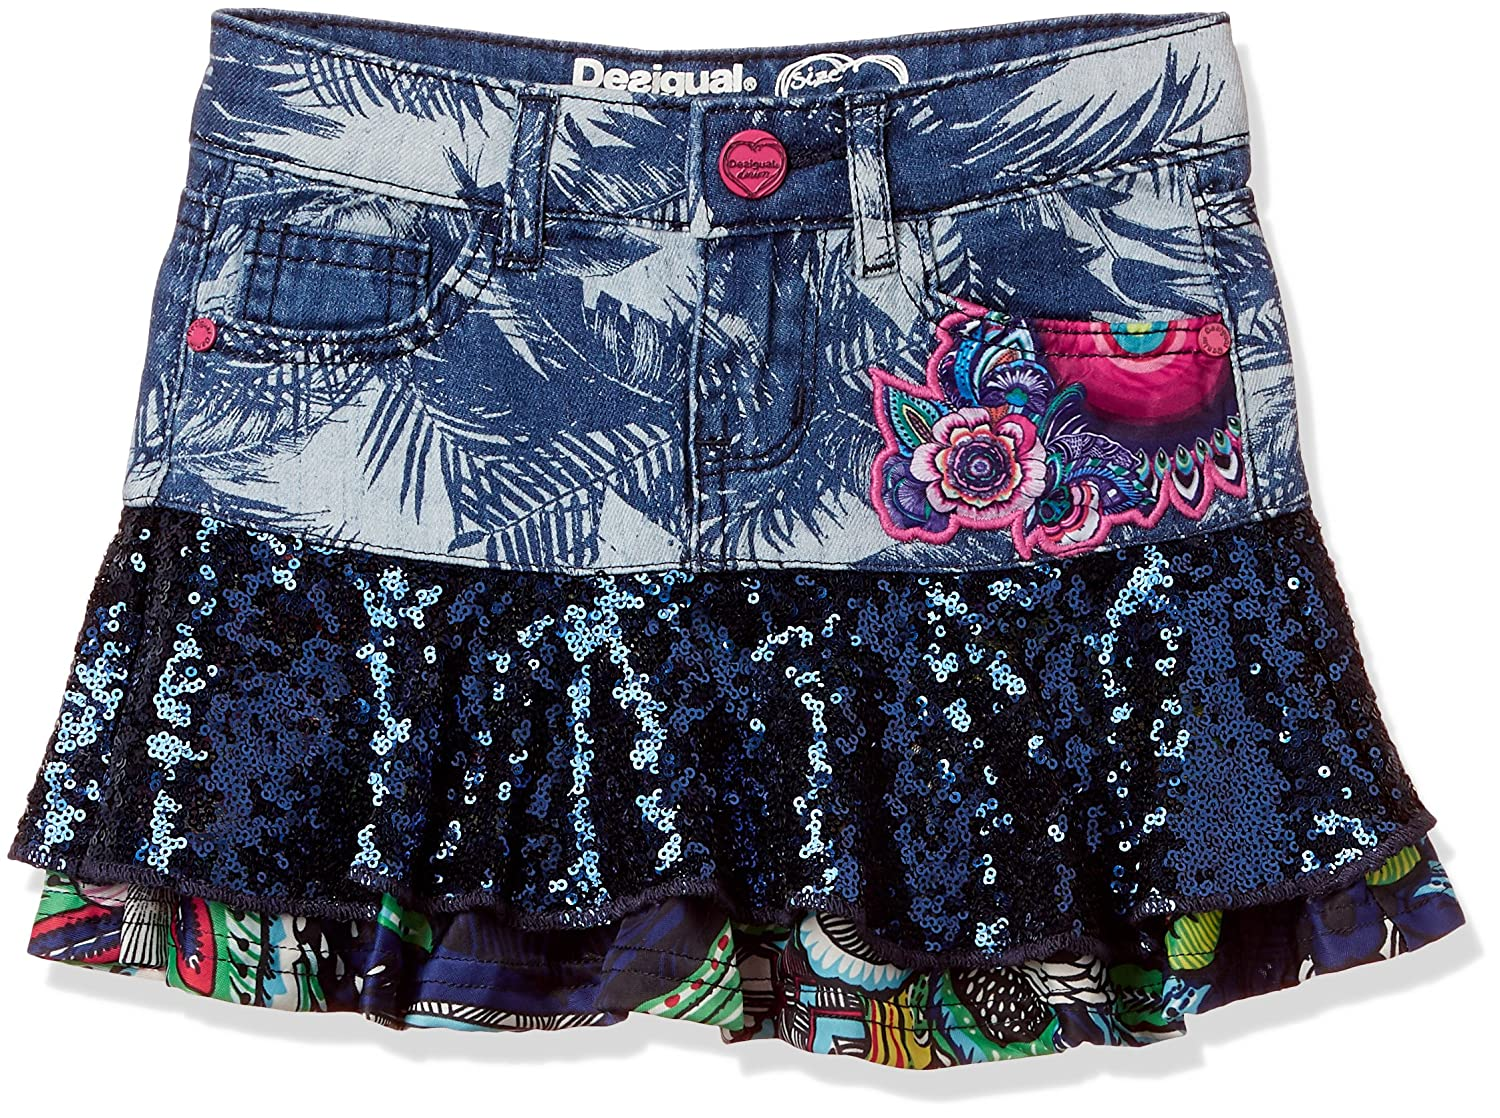 Desigual TANGAMANENT, Falda para Niñas, Denim Raw, 164: Amazon.es ...